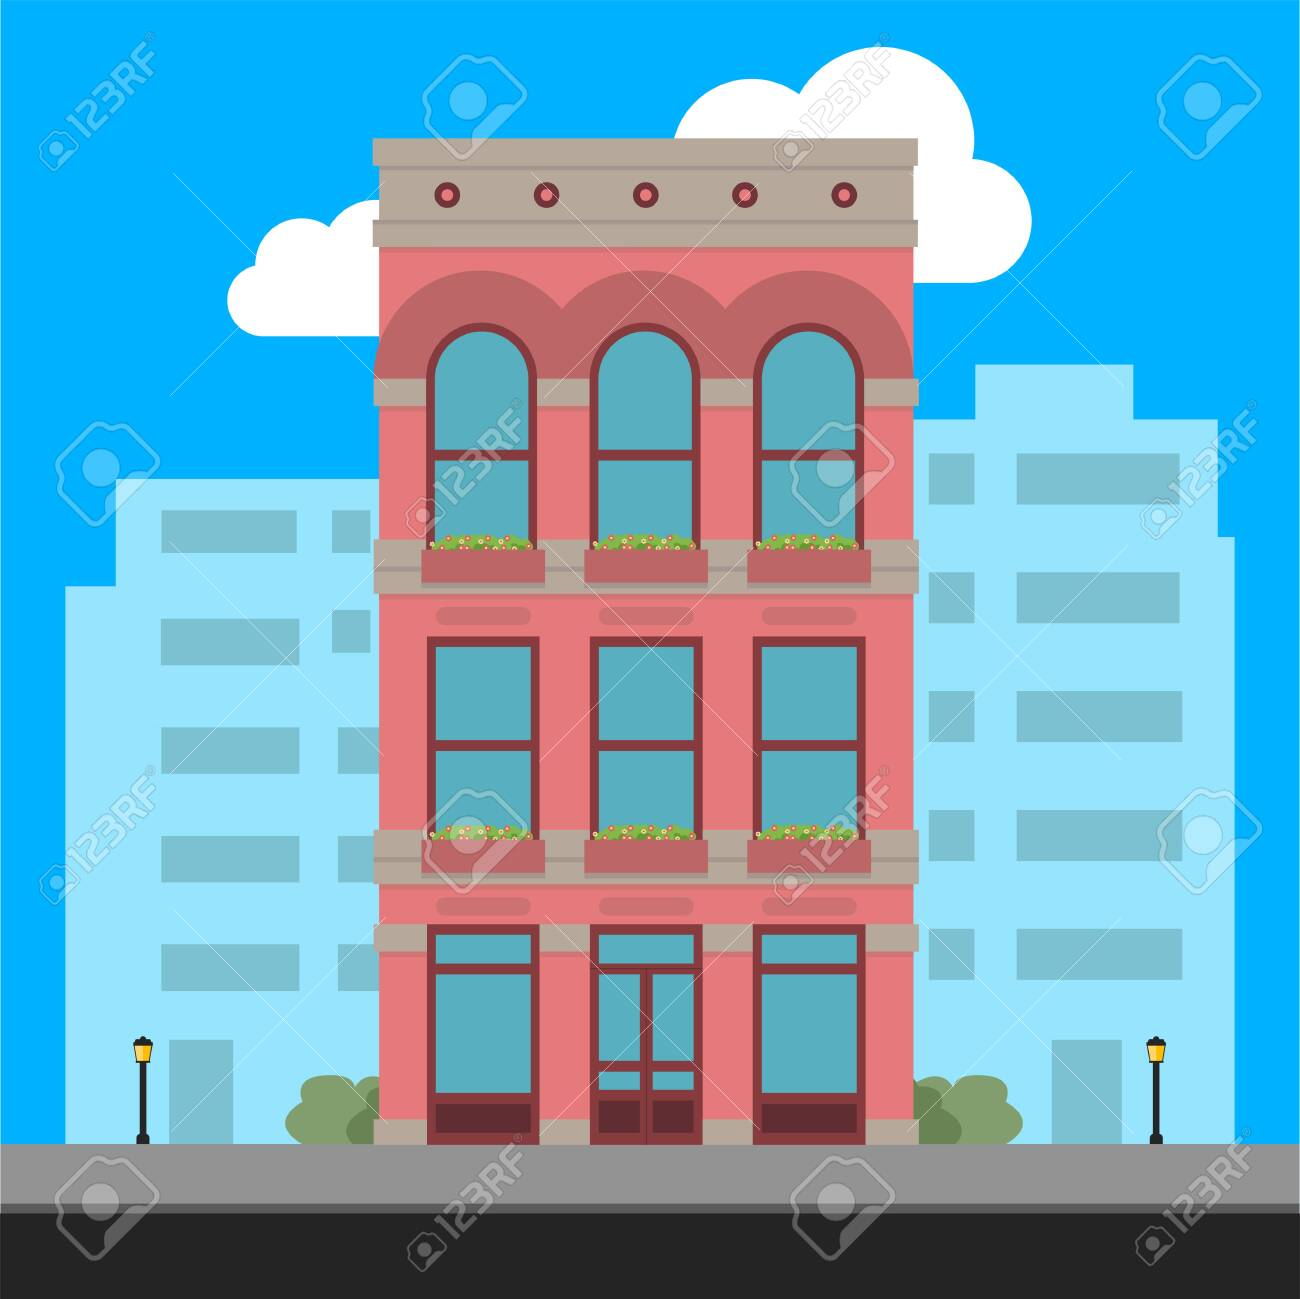 Apartment Building and City Illustration - Vector - 123546538